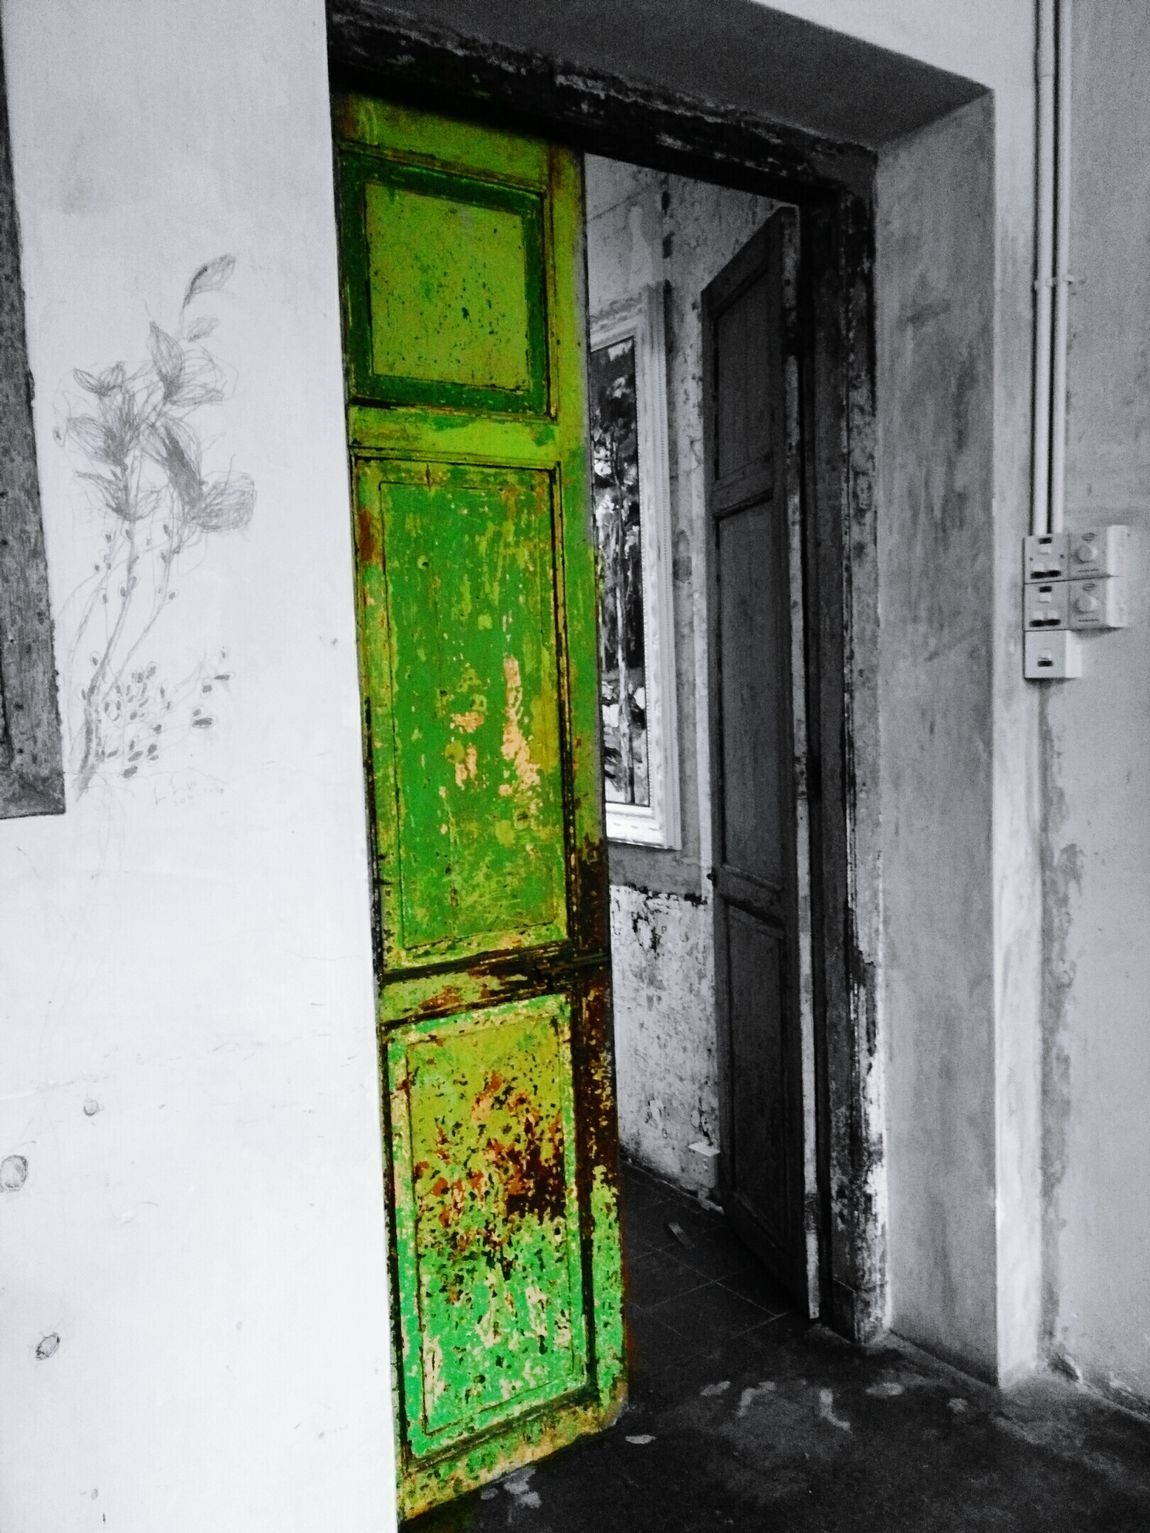 Built Structure Green Color Architecture No People Close-up Indoors  Architecture